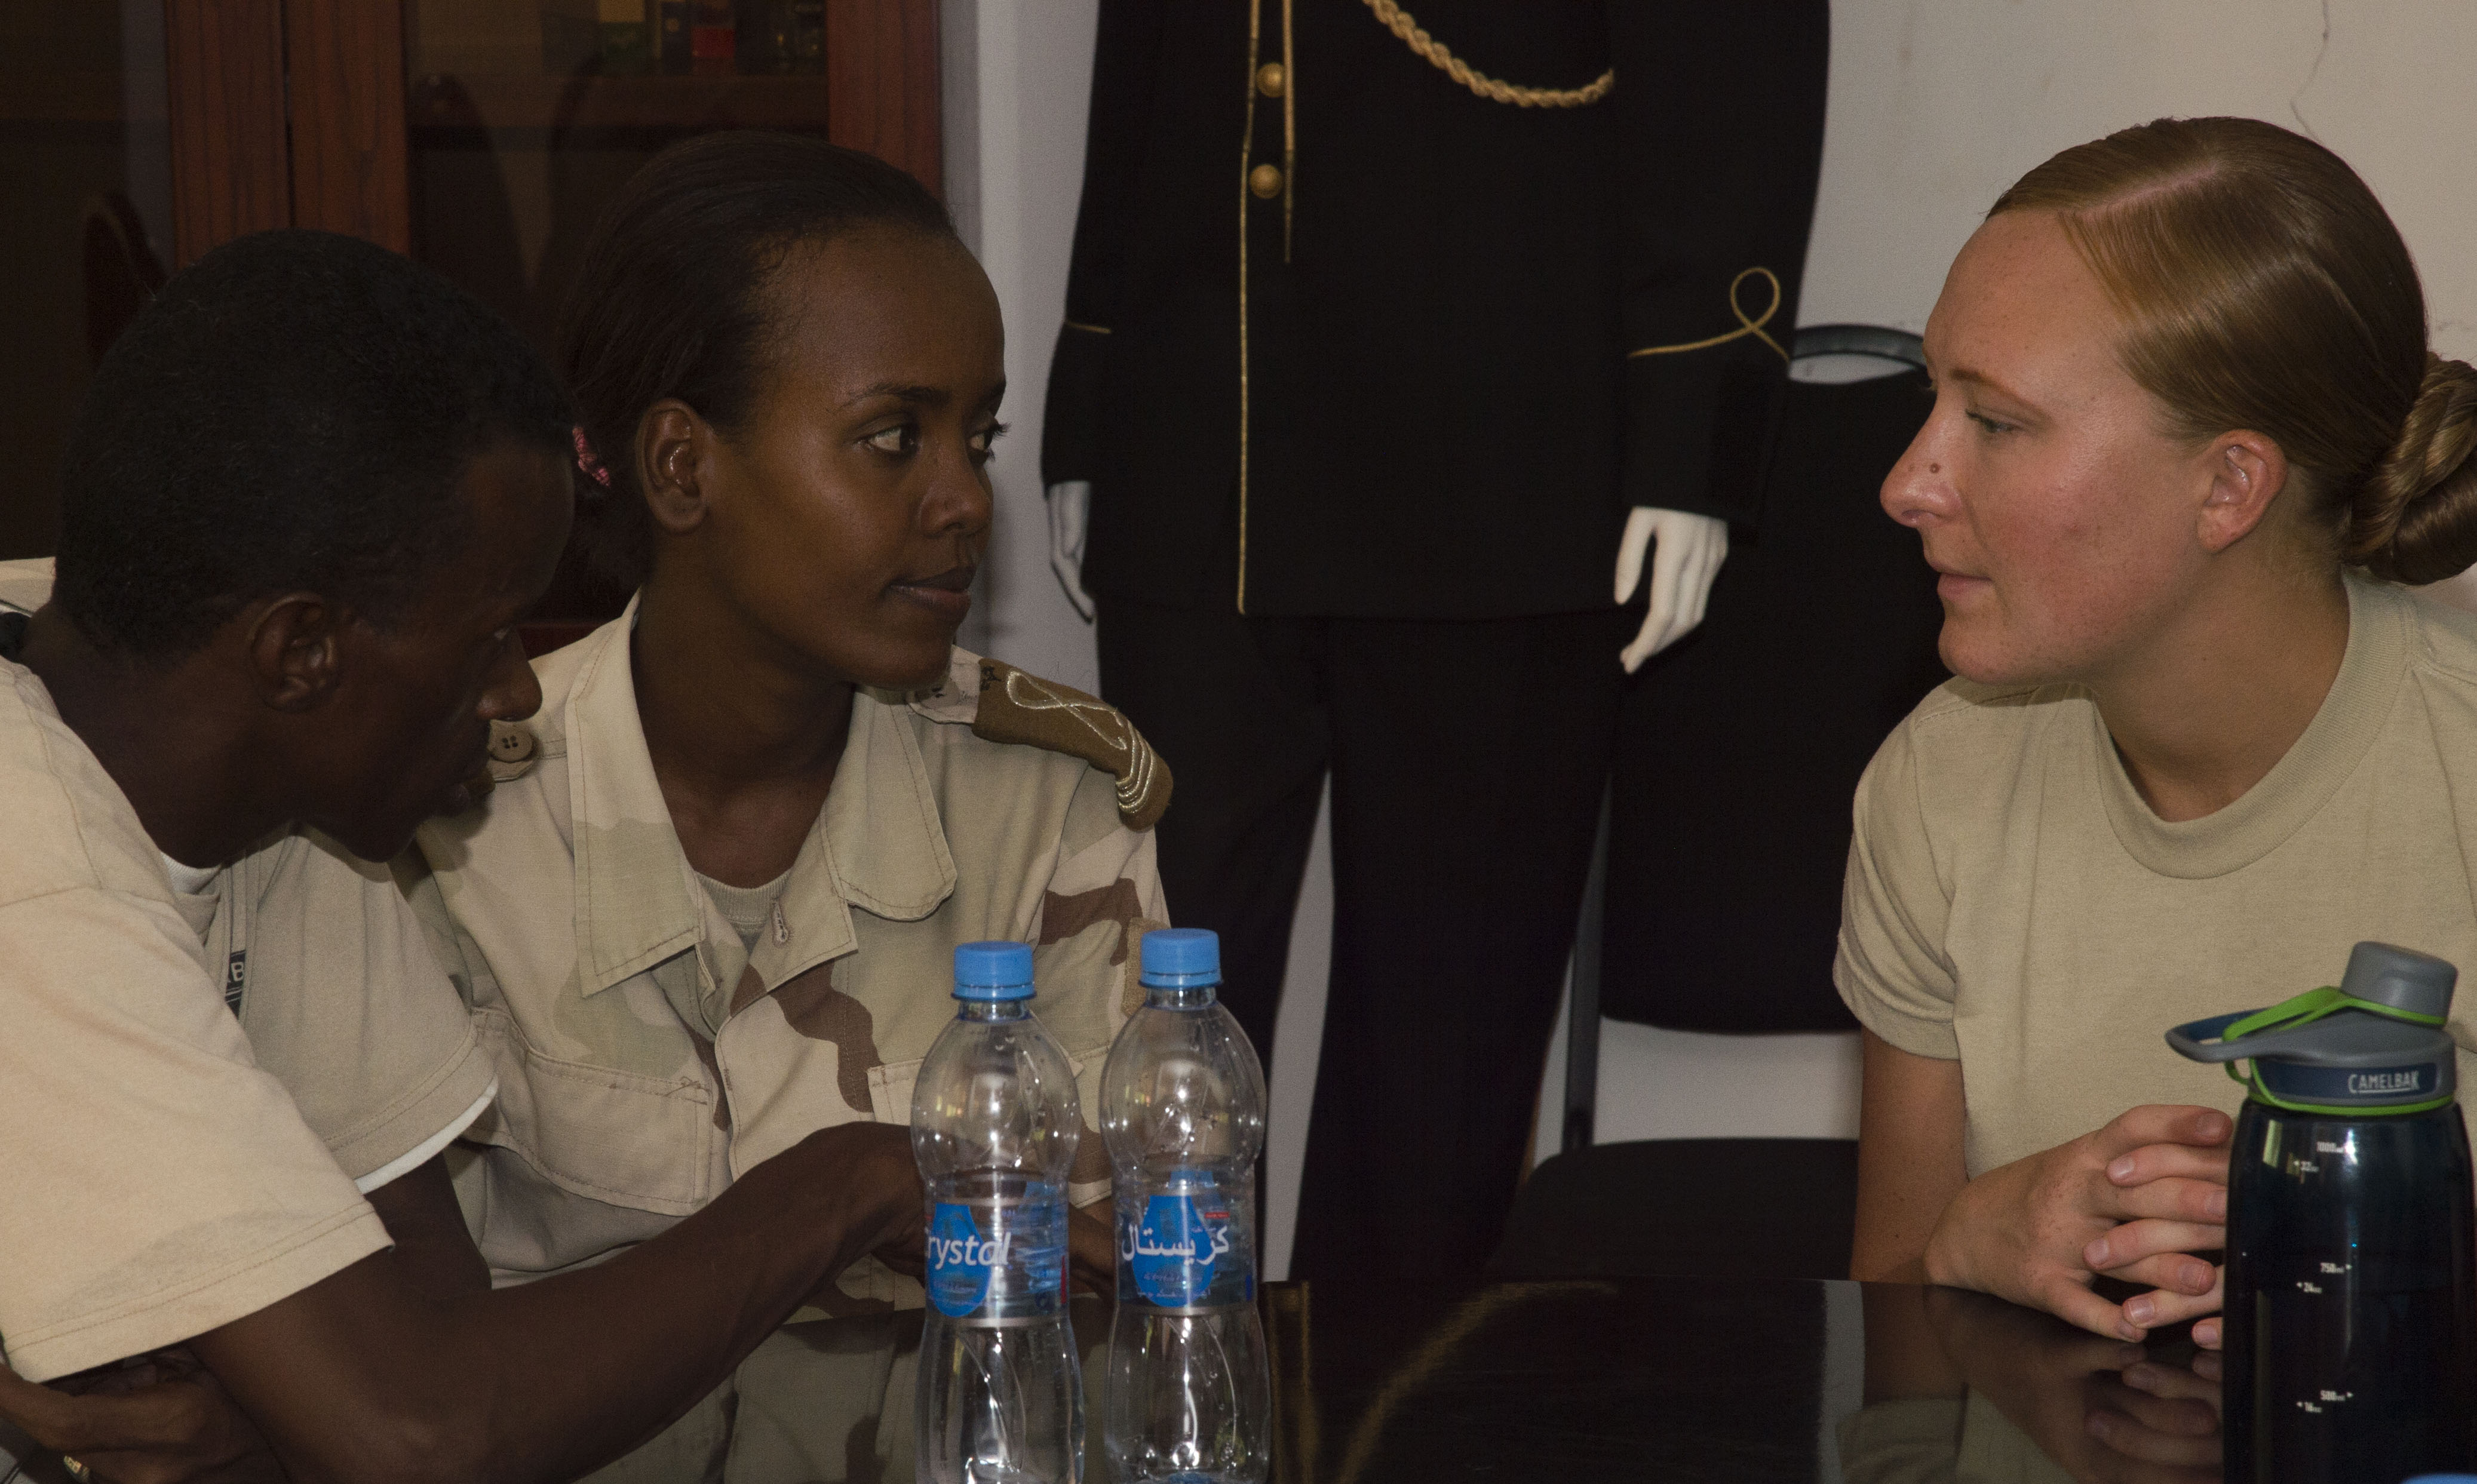 Cadet Ali, Djibouti's Arta Interservices Military Academy third-year student, attempts to negotiate with U.S. Army Spc. Kristie Richardson, 403rd Civil Affairs and scenario role player, during Civil Military Cooperation training May 18, 2016, at Arta, Djibouti.  The course was intended to teach the cadets communication and interaction skills with host nation civilians, and for them to pass the information to other soldiers after they graduate and are assigned to units. (U.S. Air Force photo by Staff Sgt. Eric Summers Jr.)